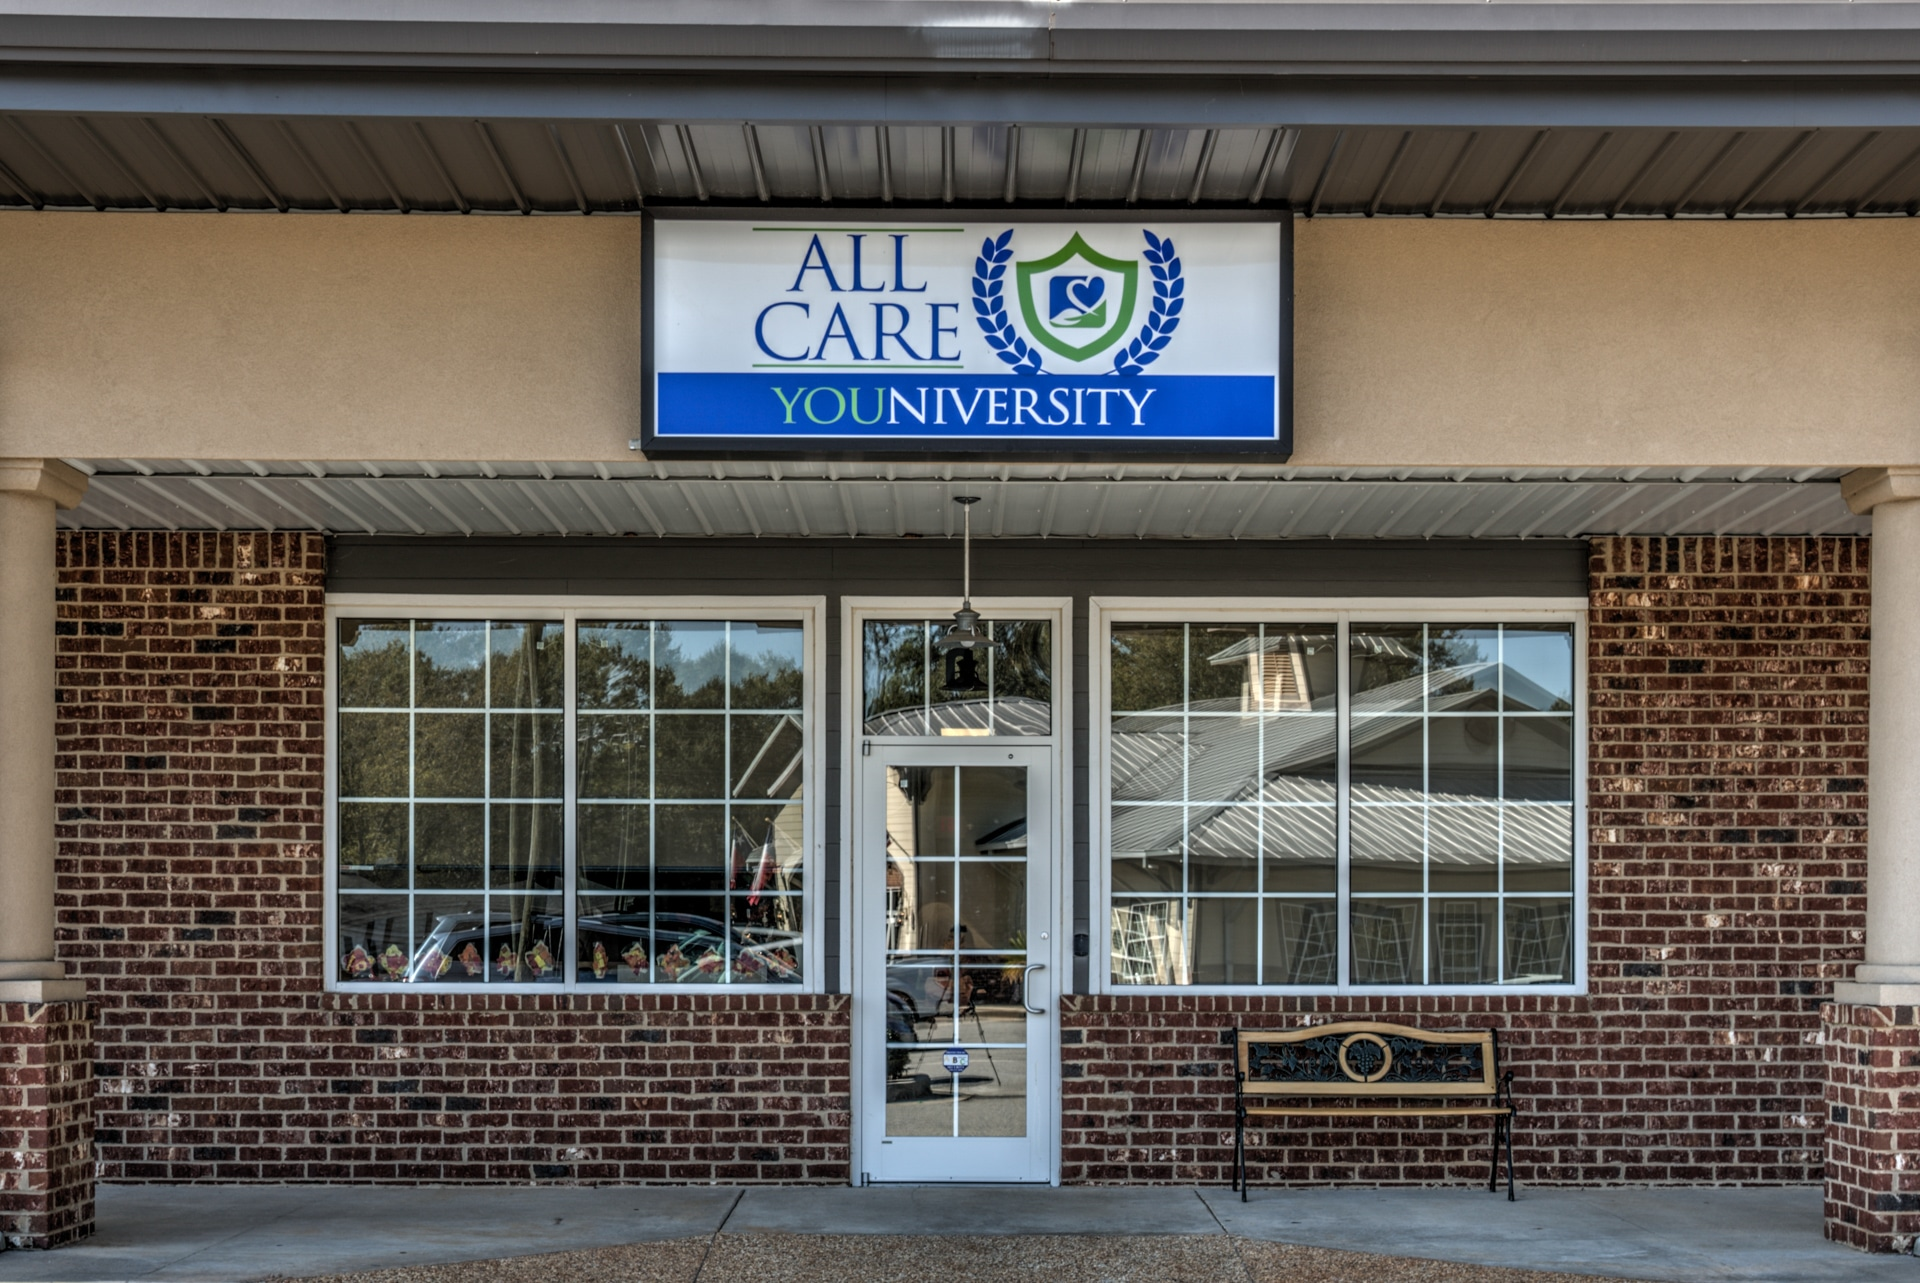 All Care Announces Expansion of Youniversity Adult Day Program  & Administrative Offices